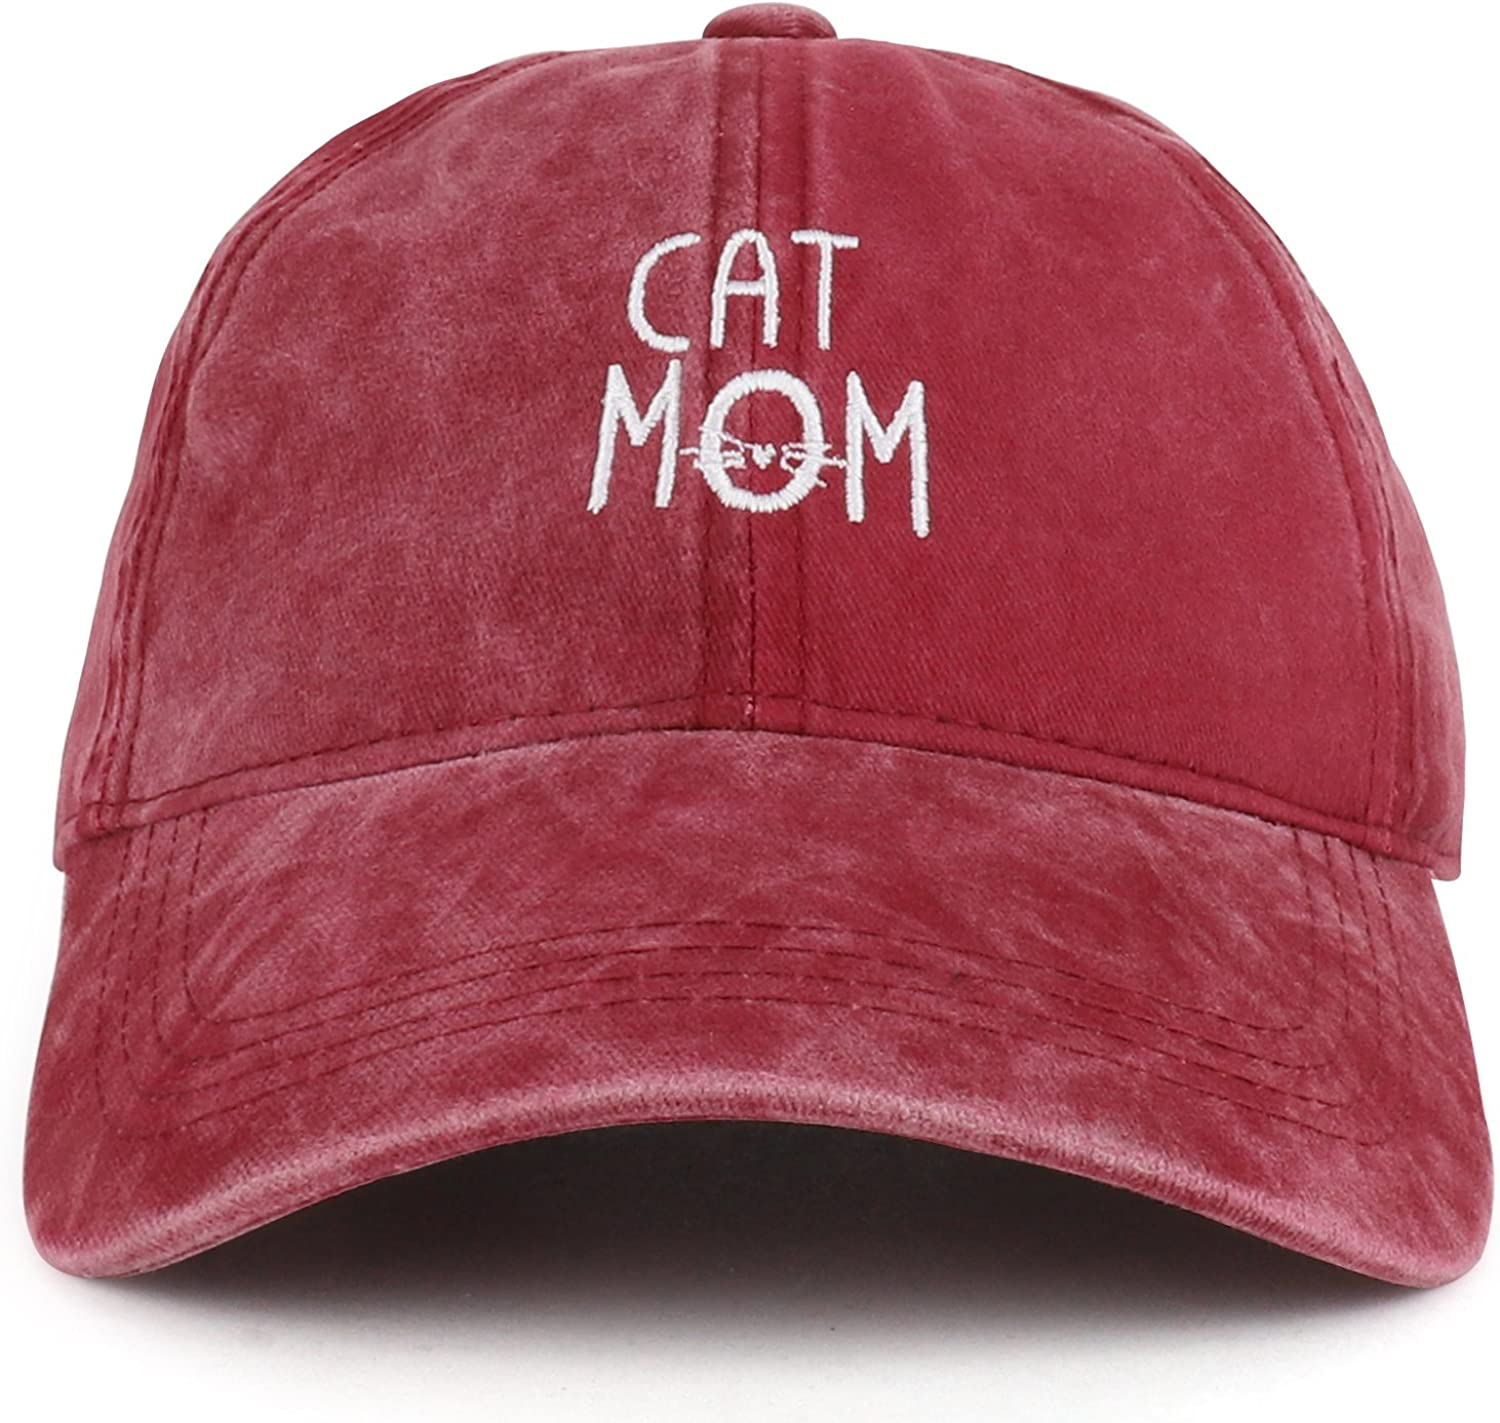 Trendy Apparel Shop Cat Mom Text Embroidered Washed Cotton Baseball Cap